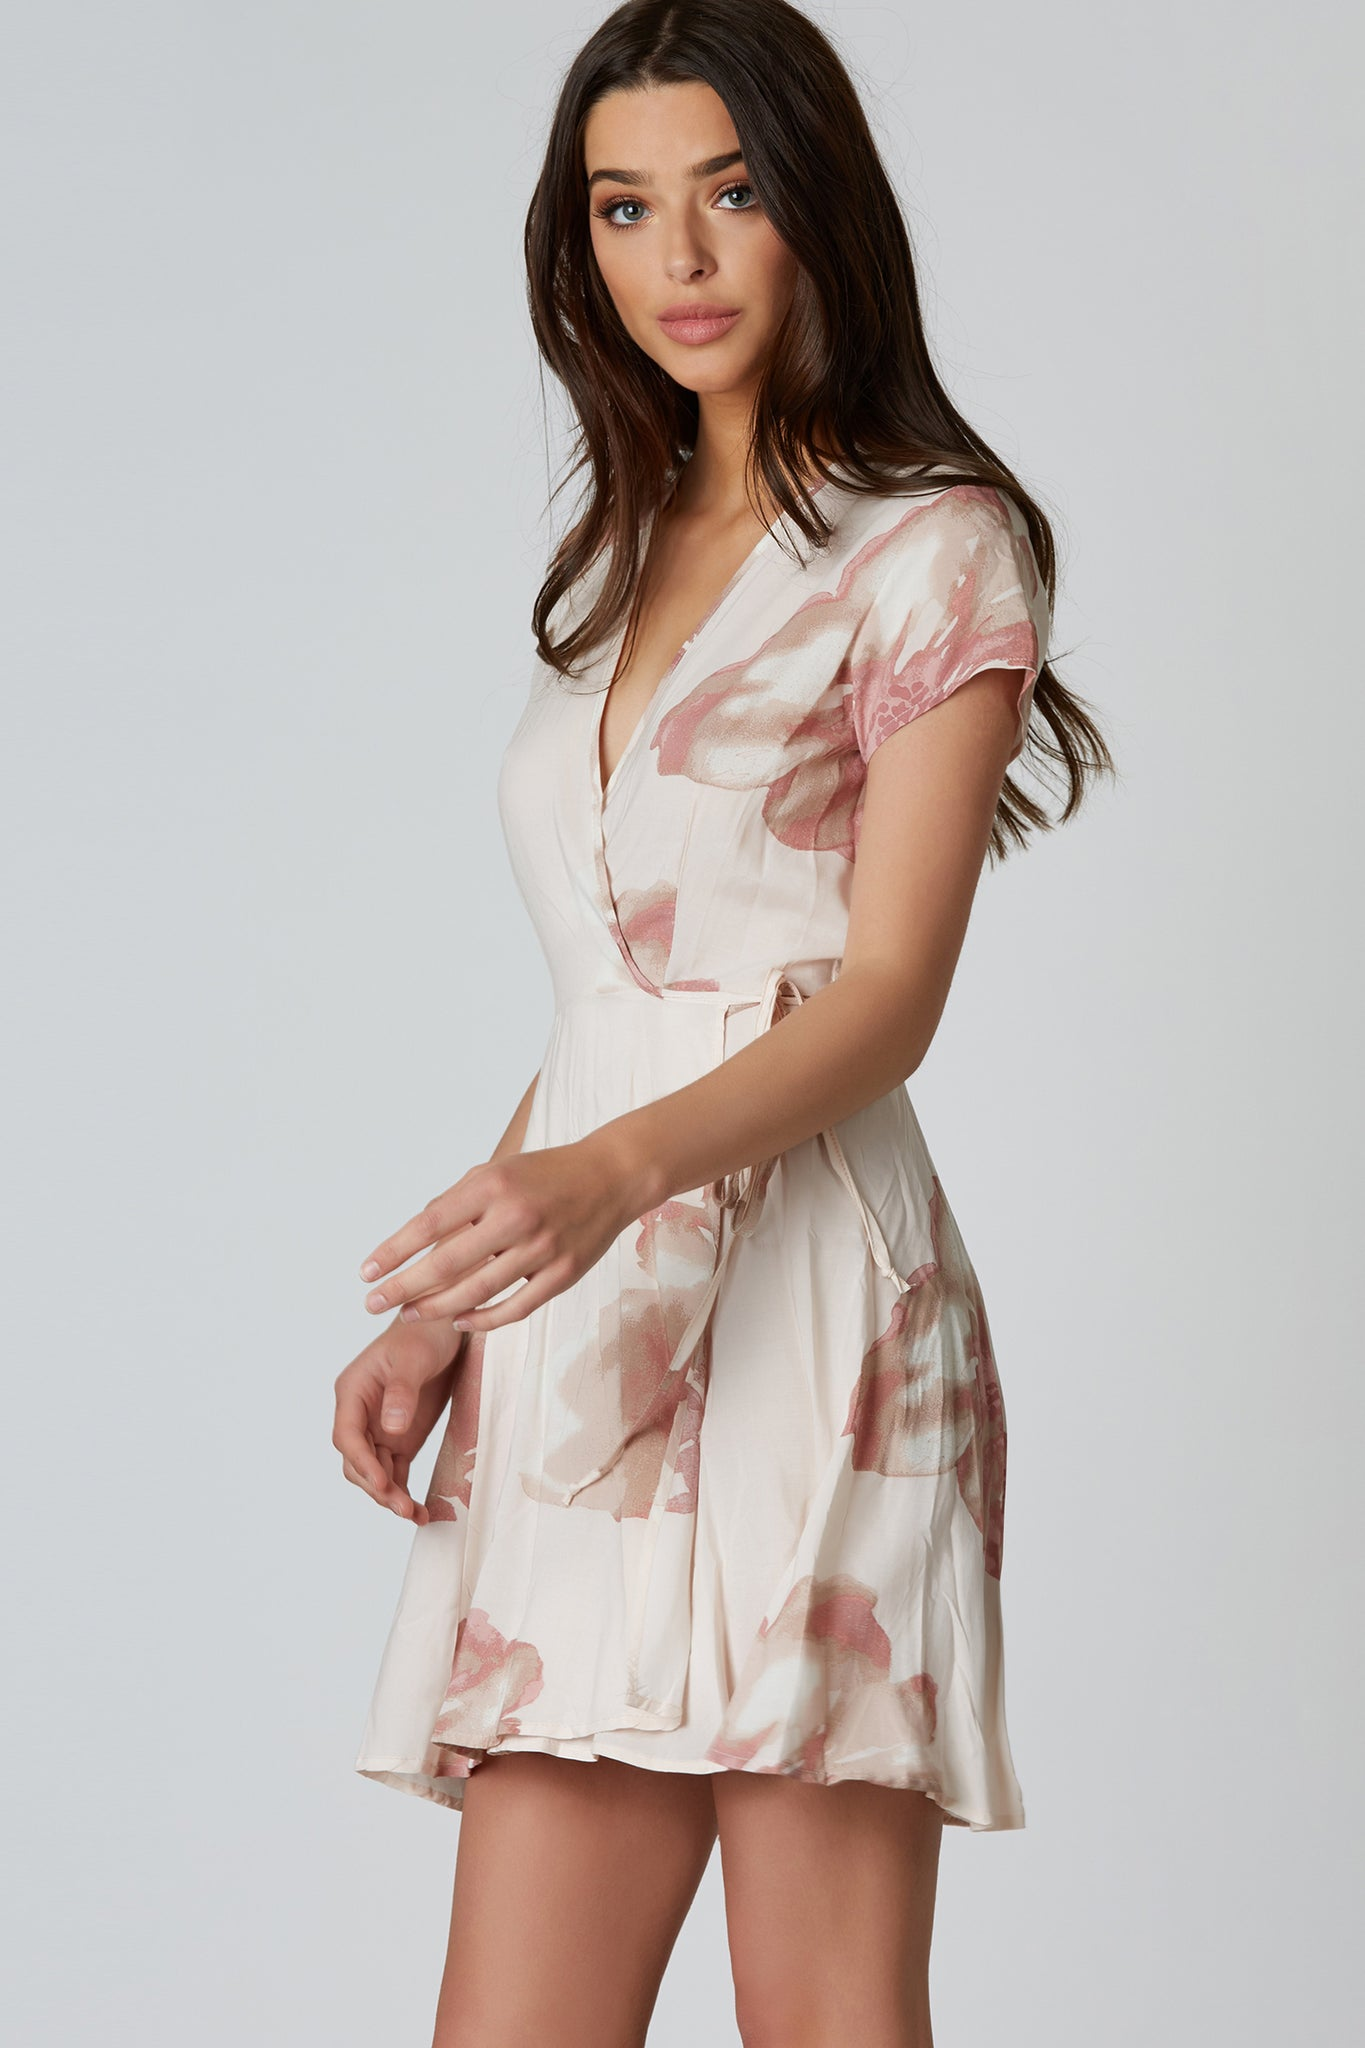 Chic collared mini dress with floral patterns throughout. Open front with wrap closure that ties on one side.